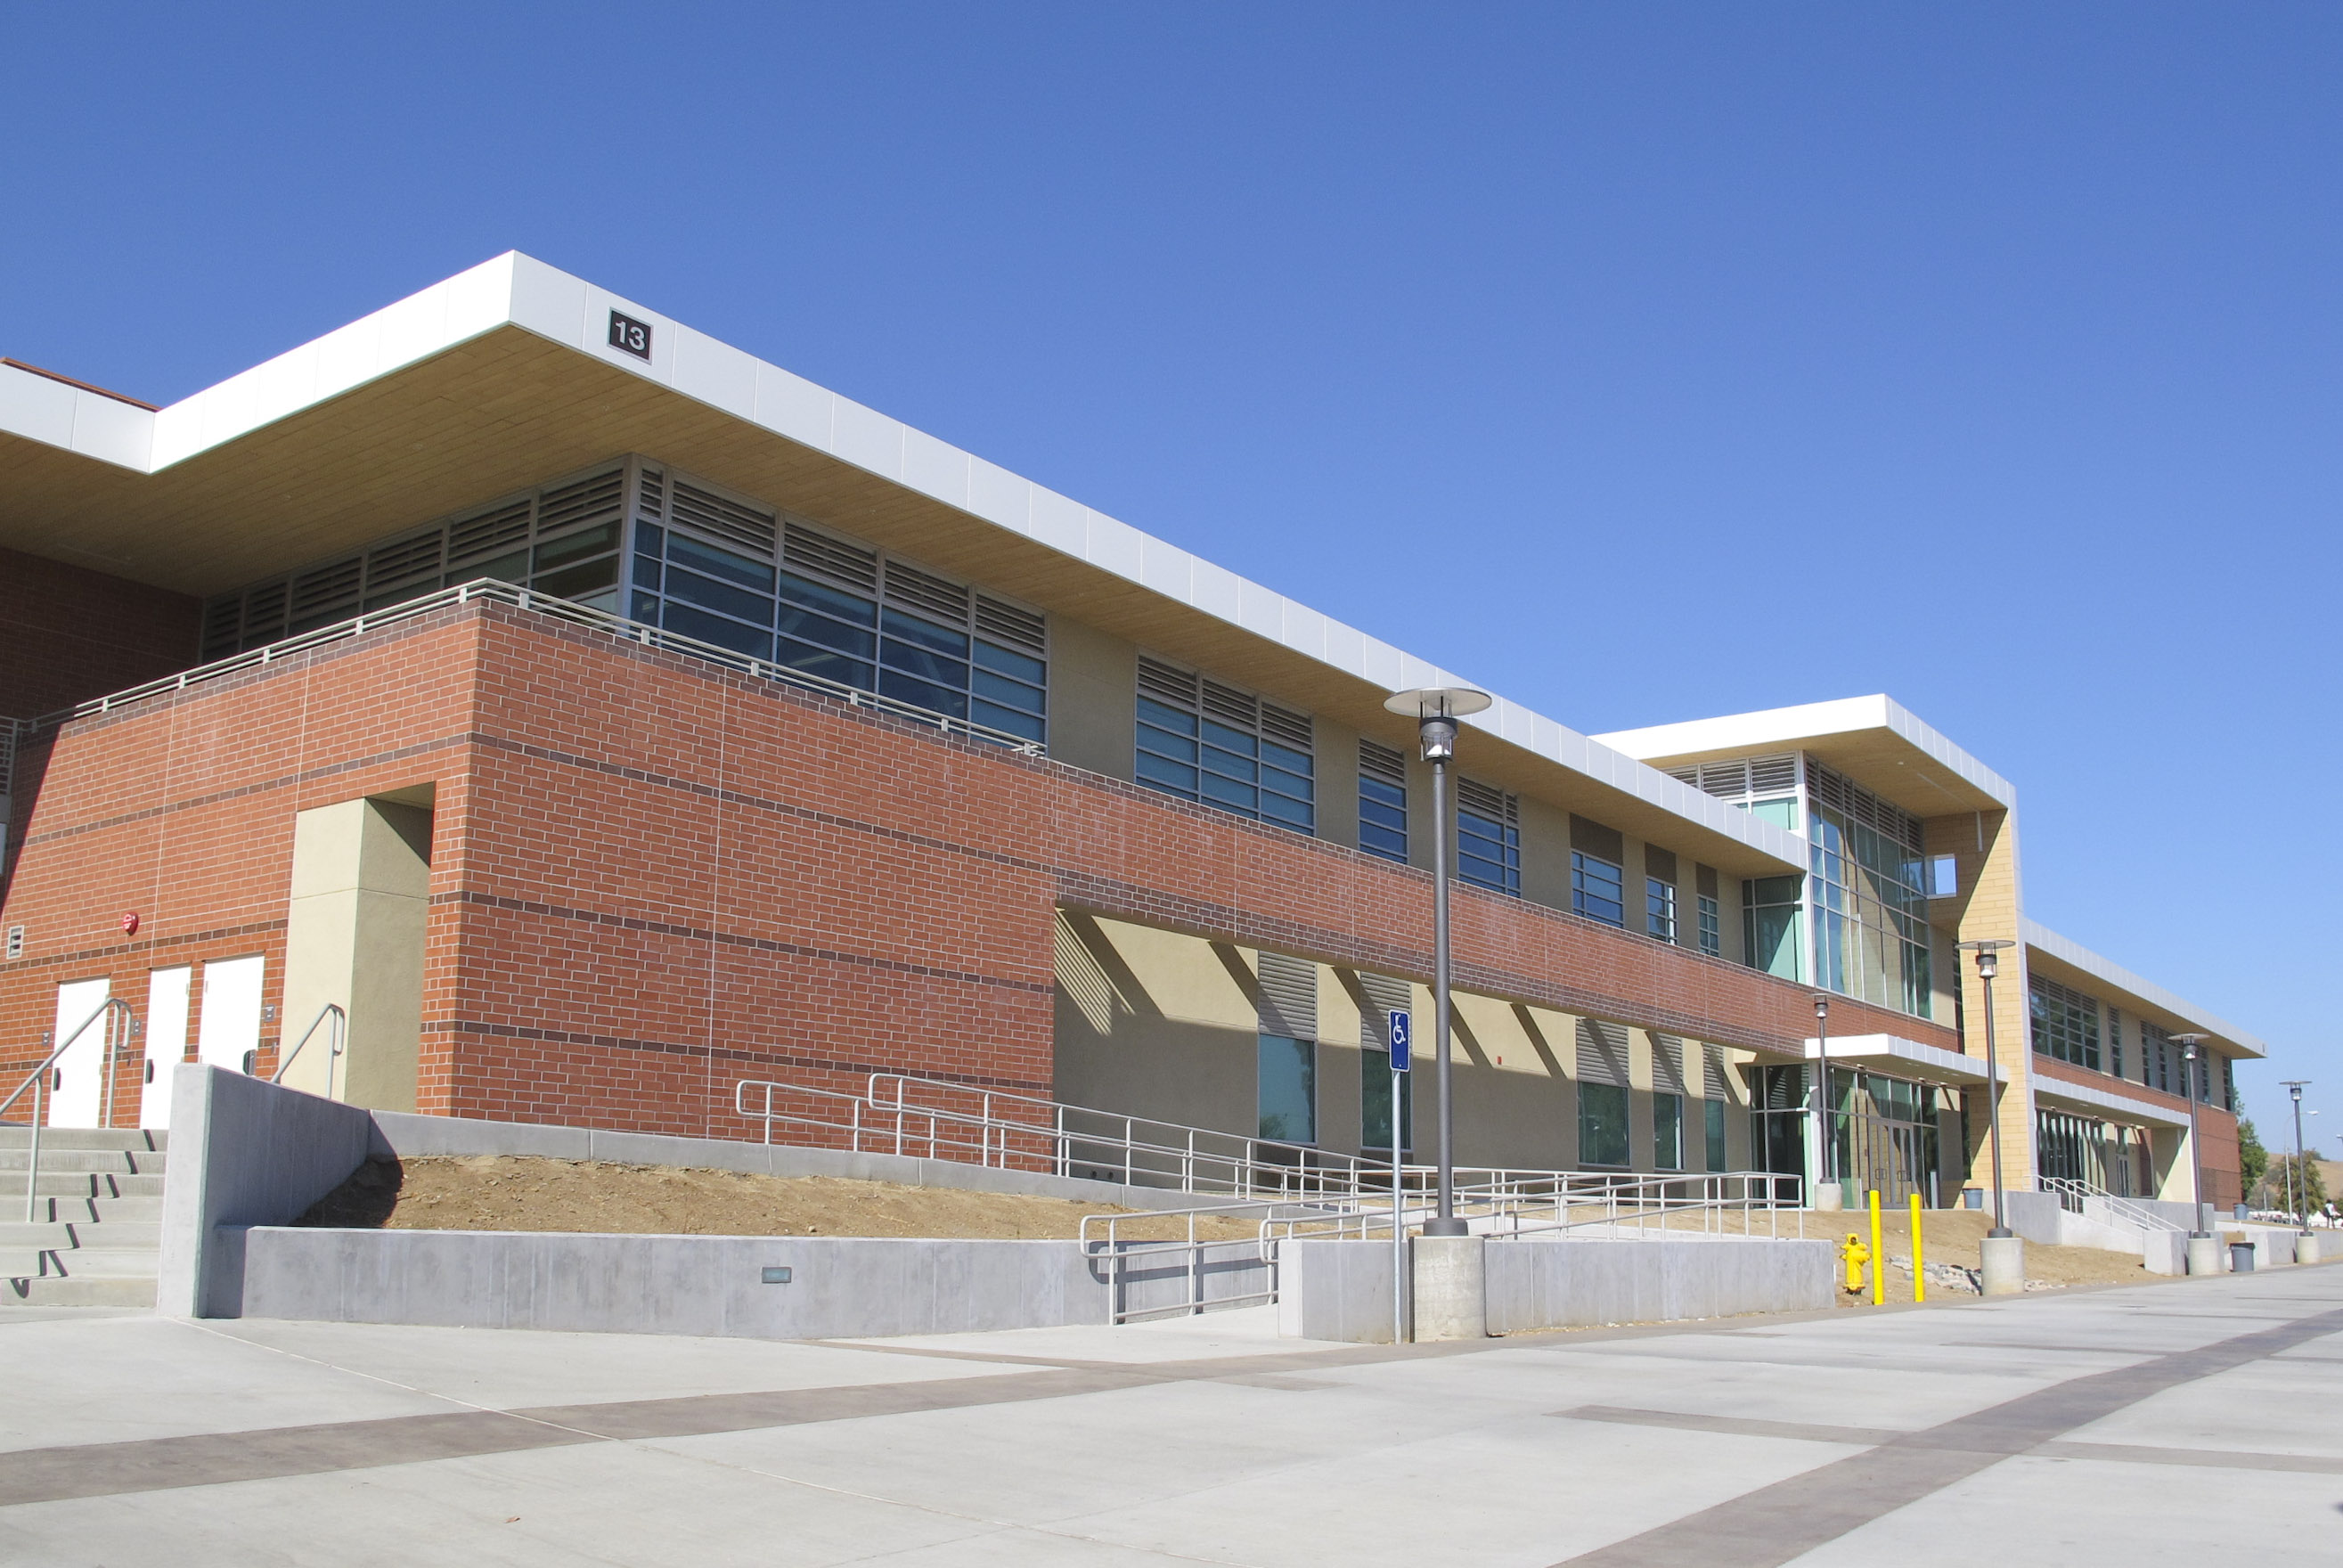 Image of the Design Technology Building